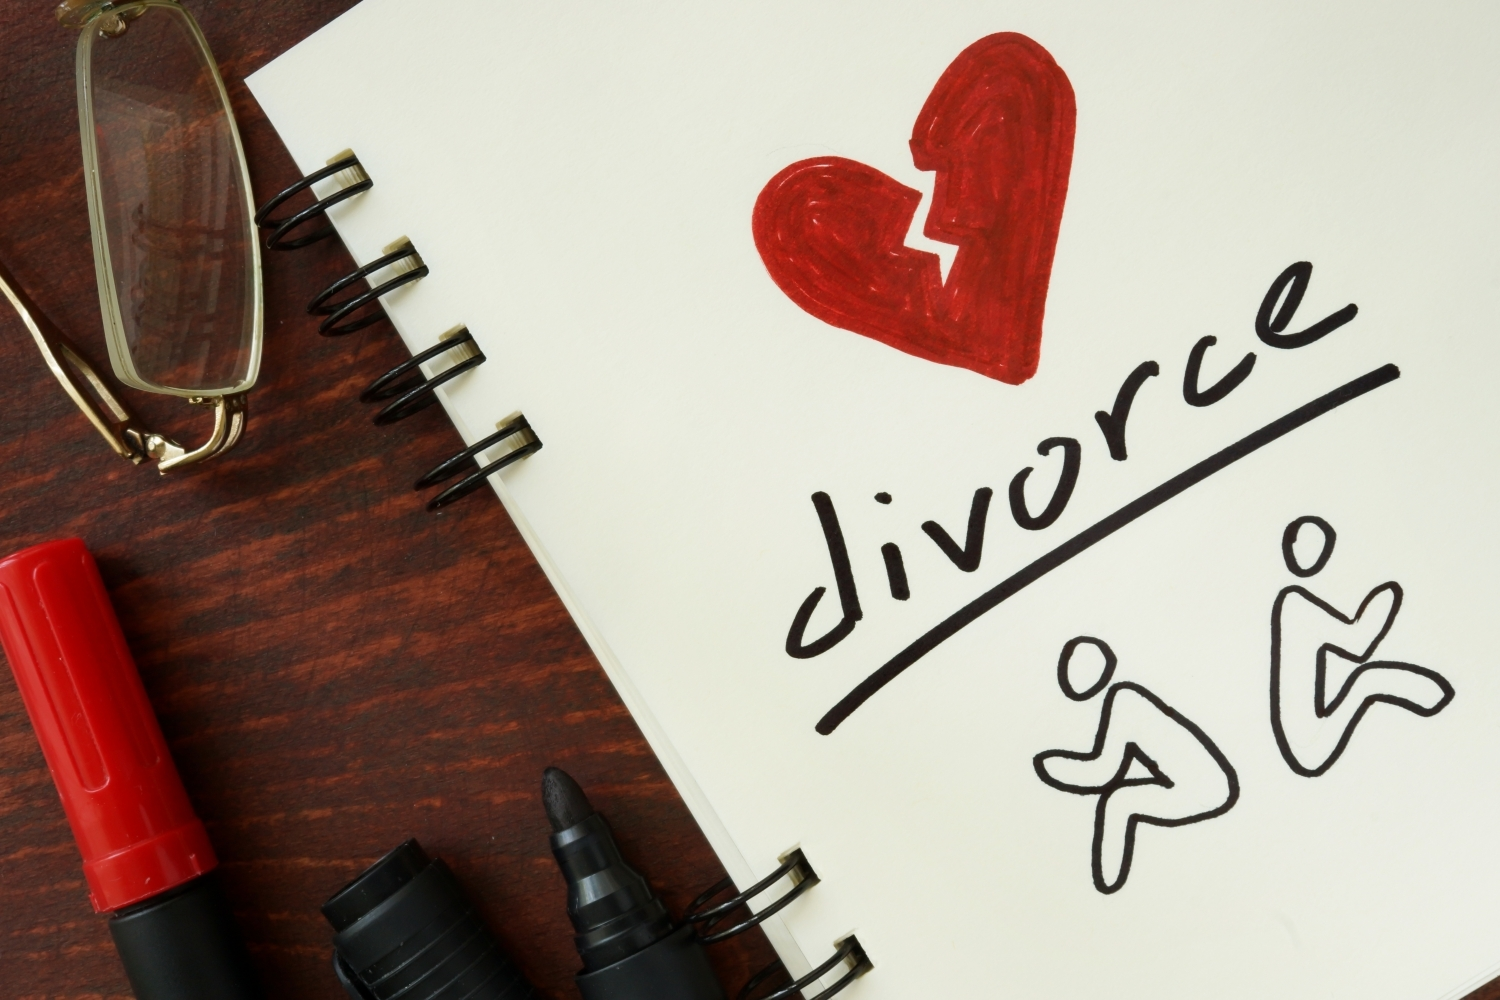 Divorce for same-sex couples